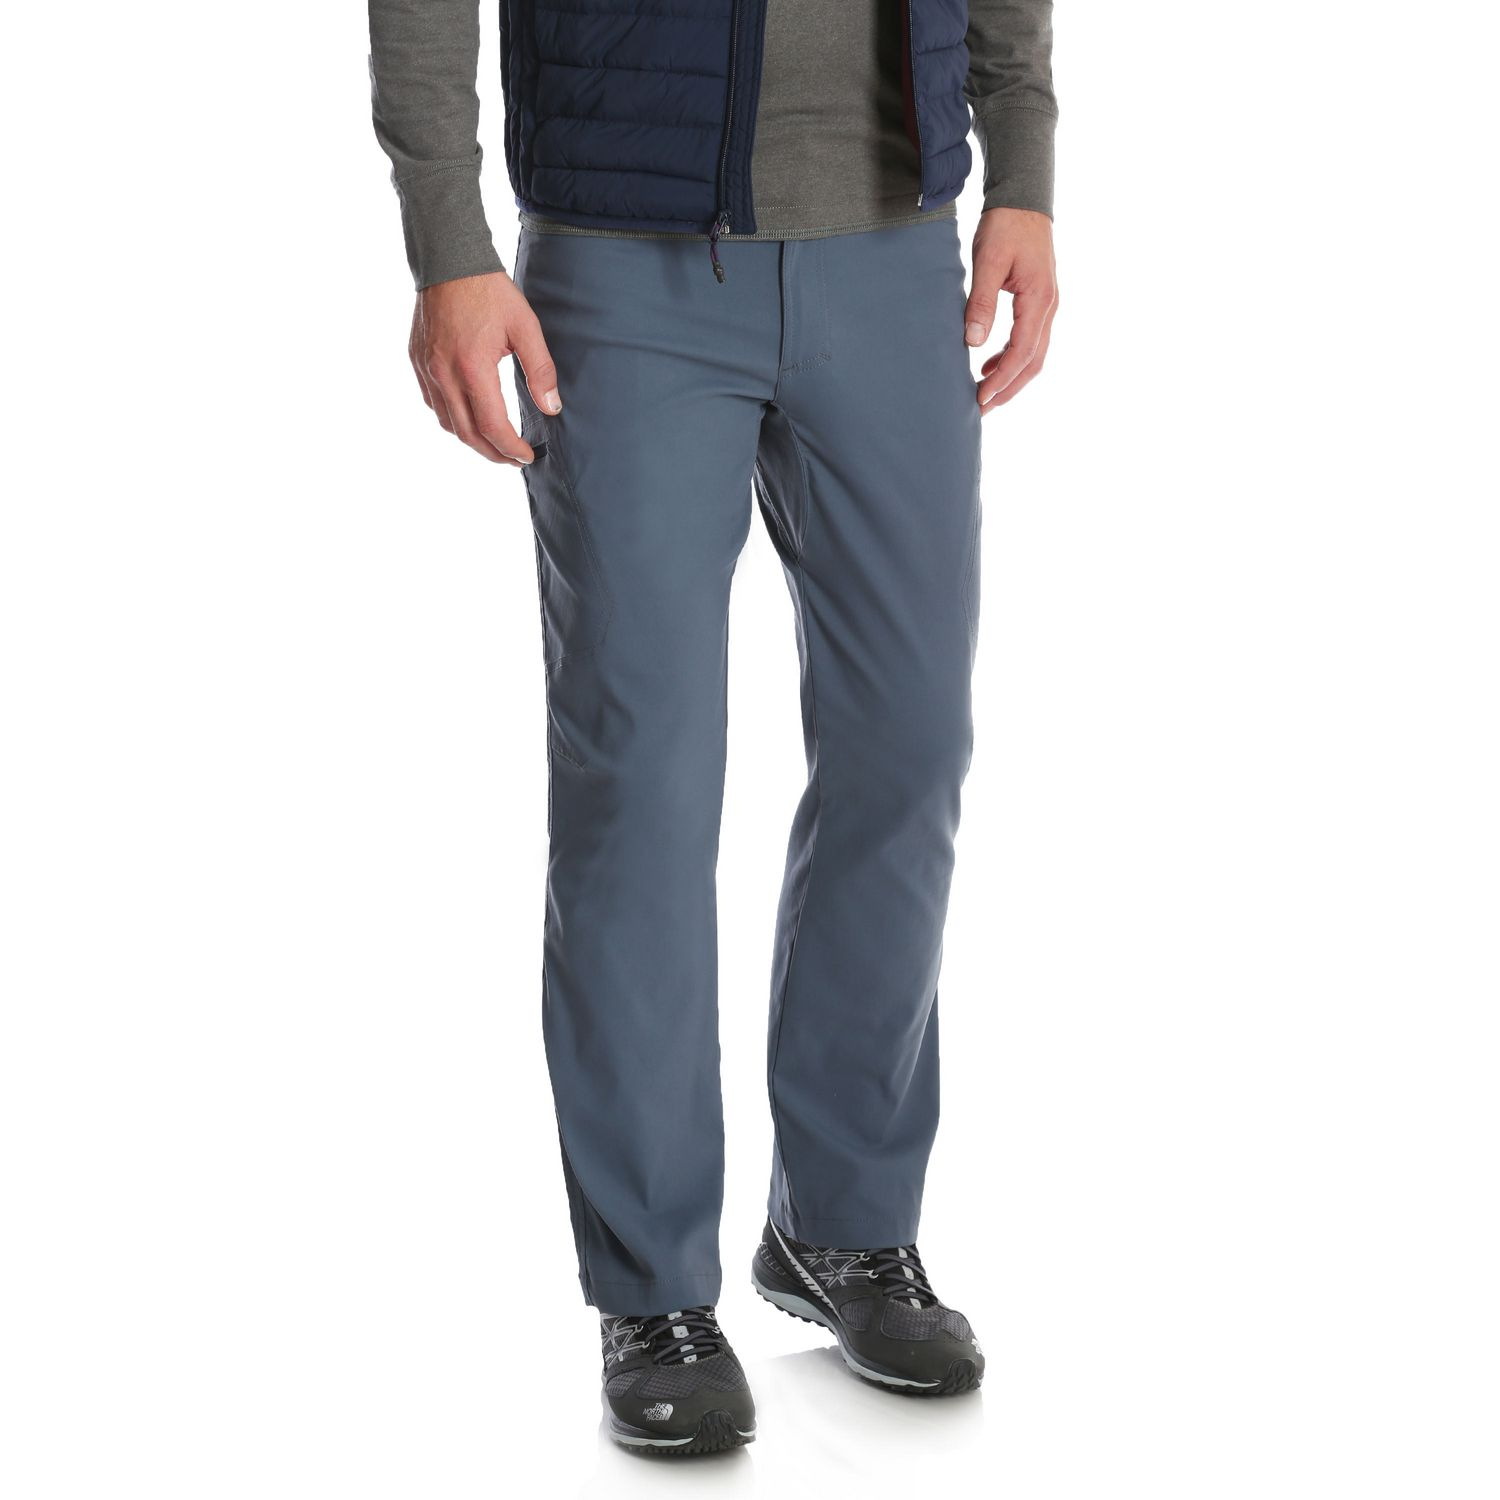 fb62ebcb Wrangler Men's Outdoor Performance Cargo Pant - image 1 of 8 zoomed image